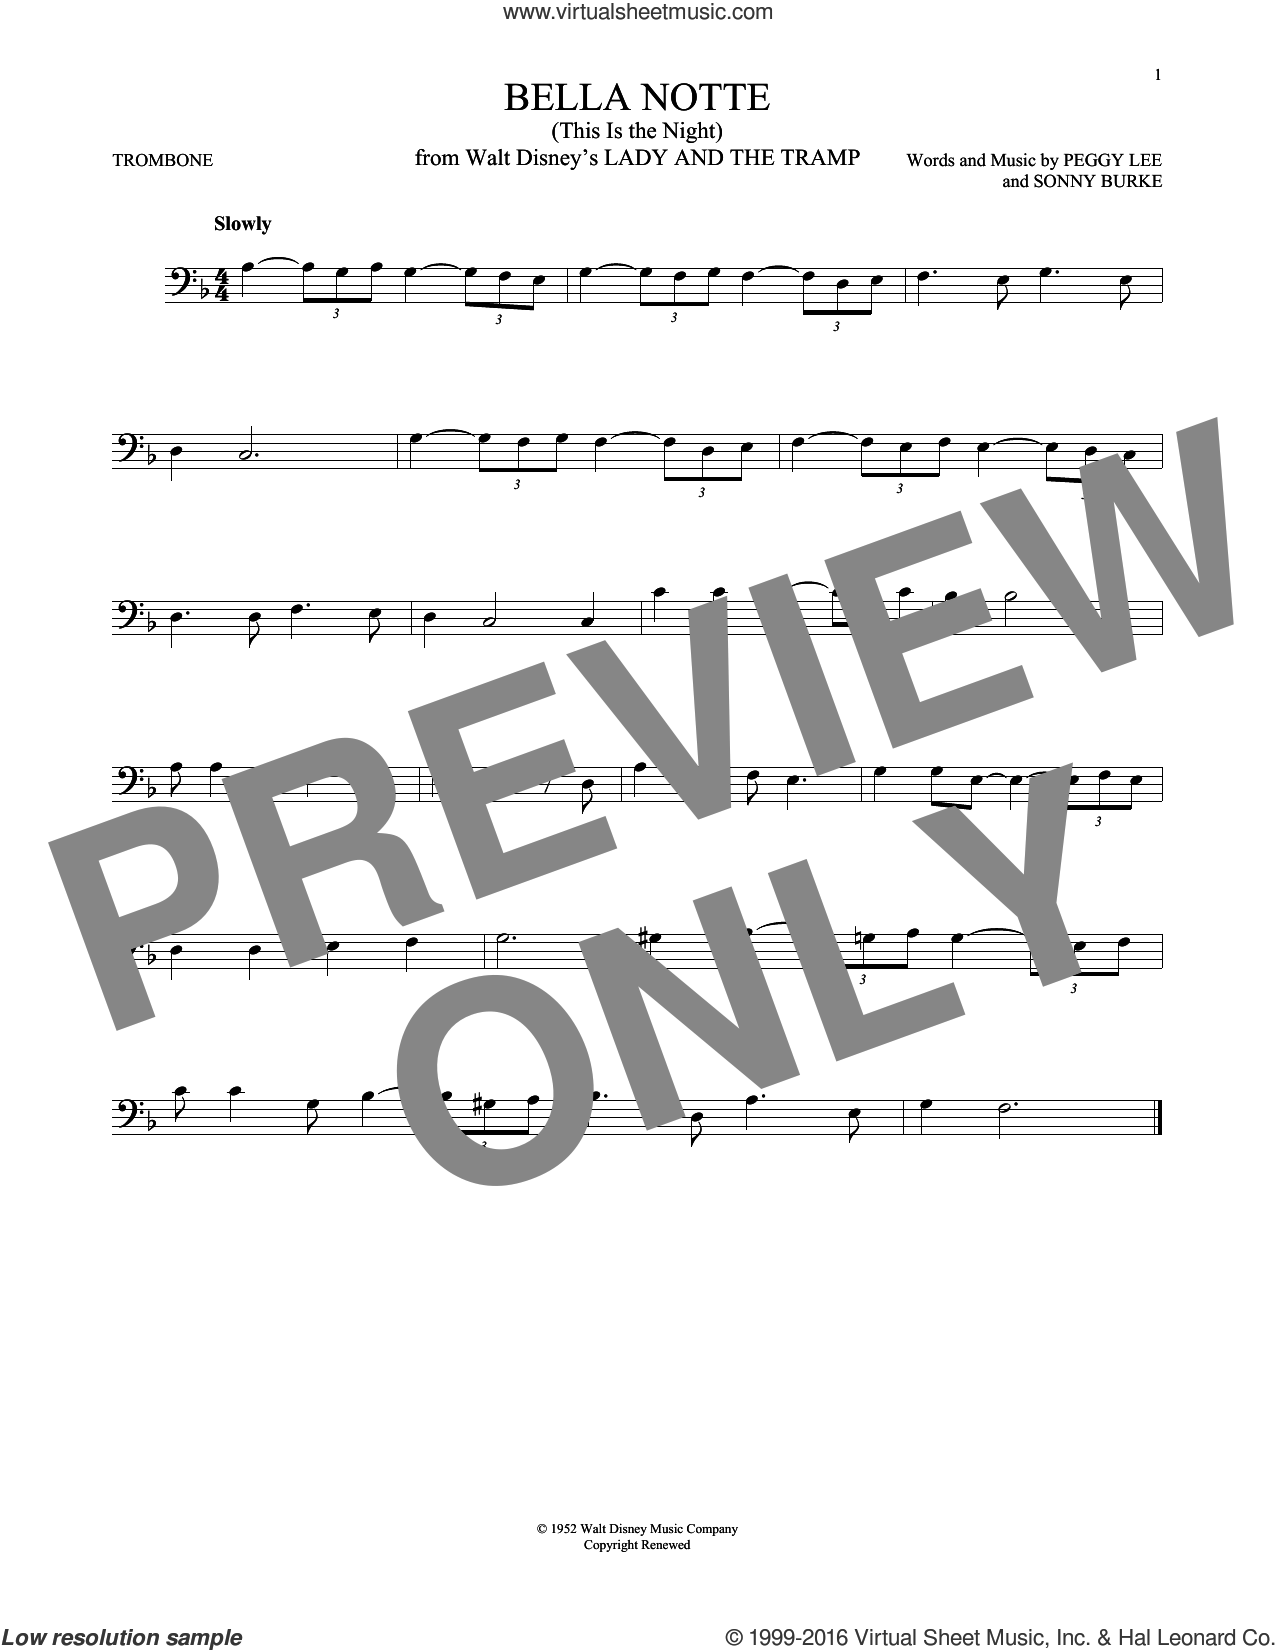 Bella Notte sheet music for trombone solo by Peggy Lee, Peggy Lee & Sonny Burke and Sonny Burke, intermediate skill level